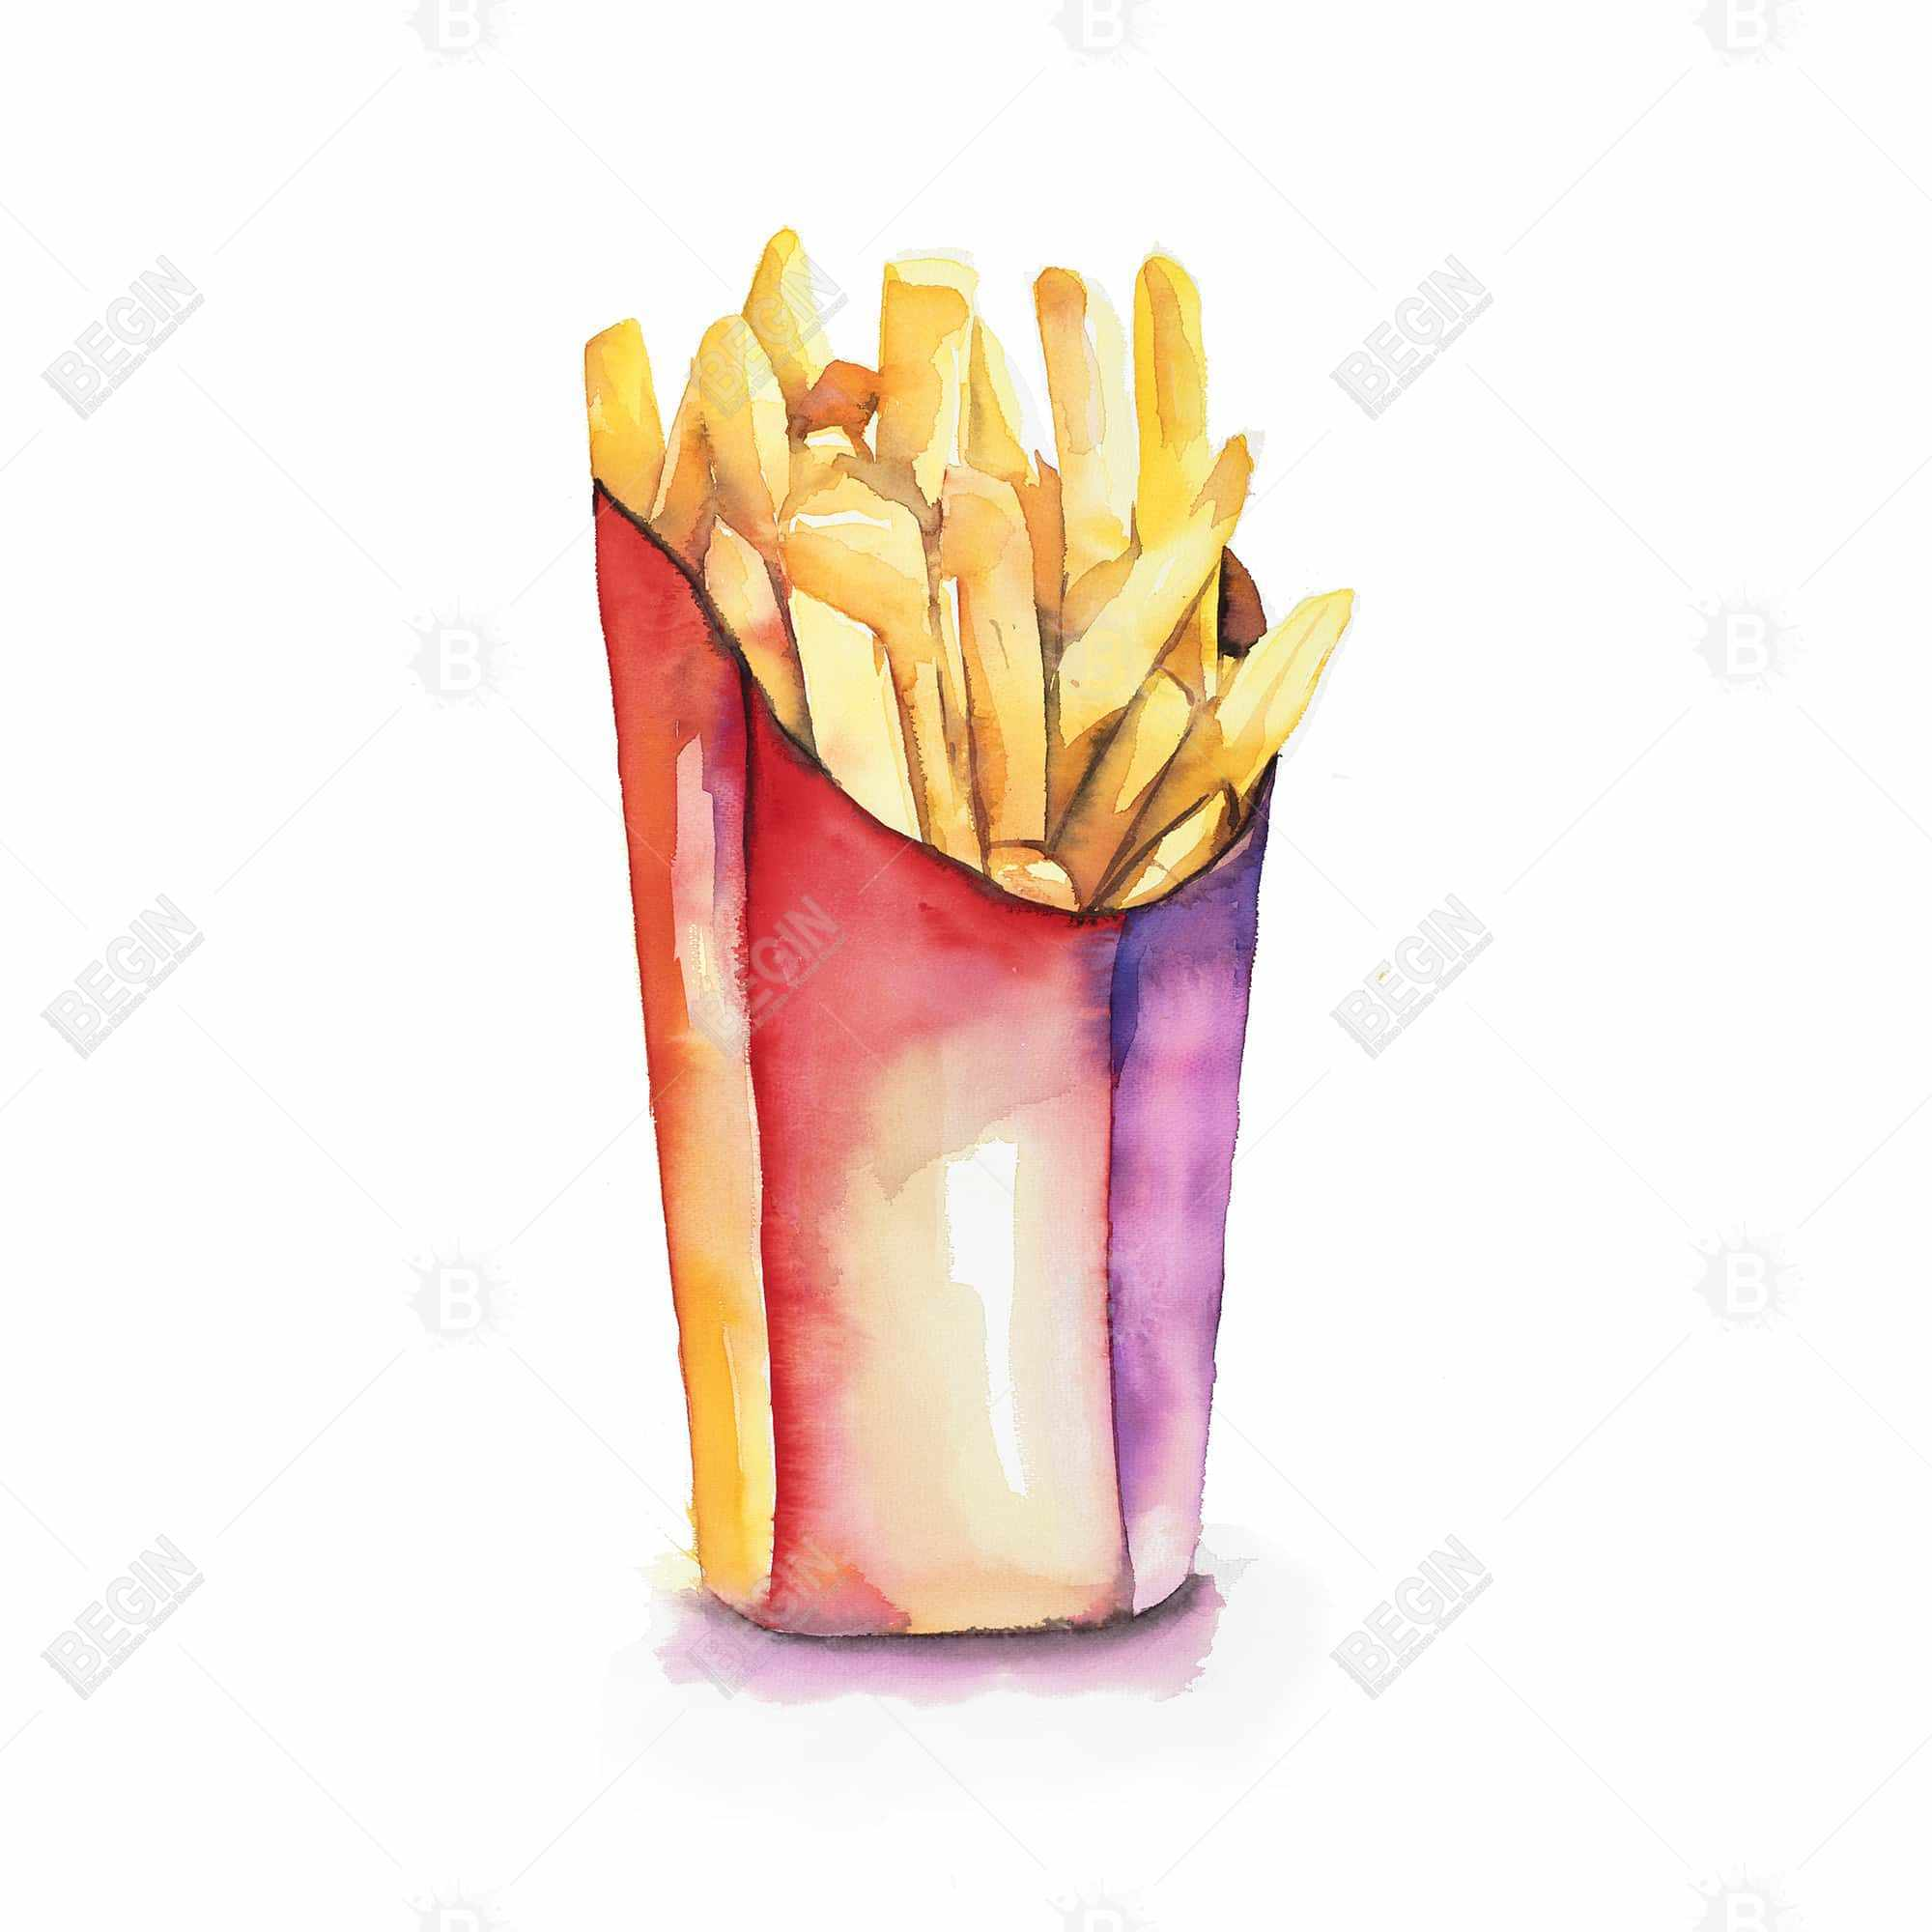 Watercolor french fries